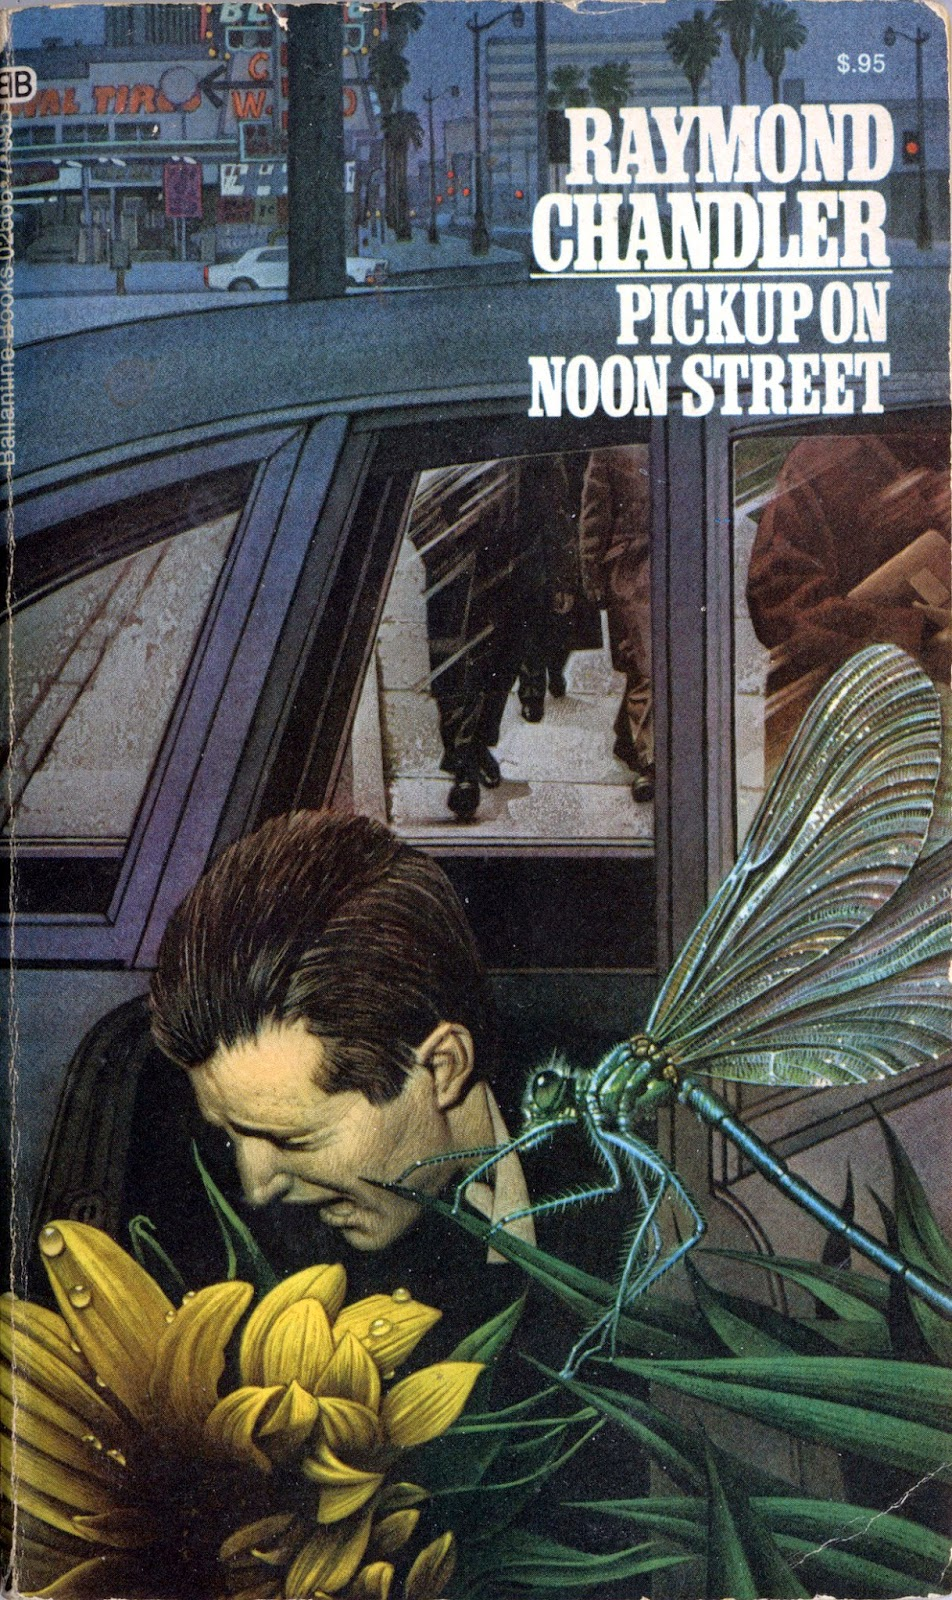 Pickup on Noon Street cover art by Tom Adams